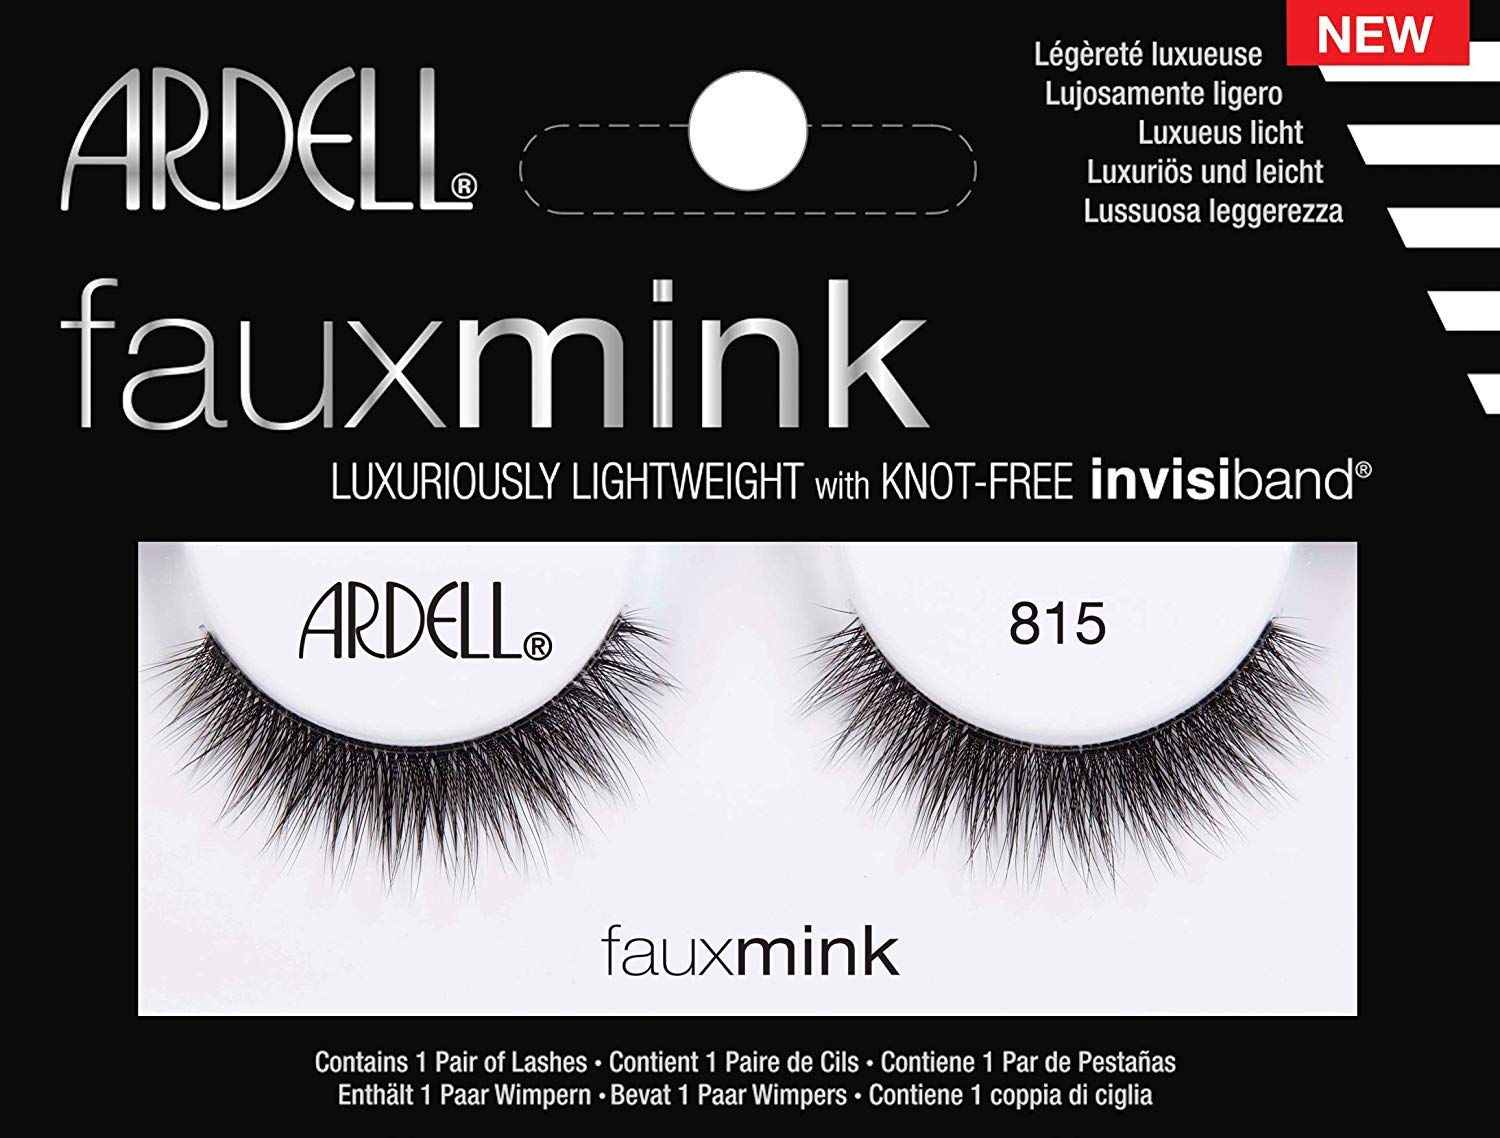 Ardell Faux Mink Lashes #815